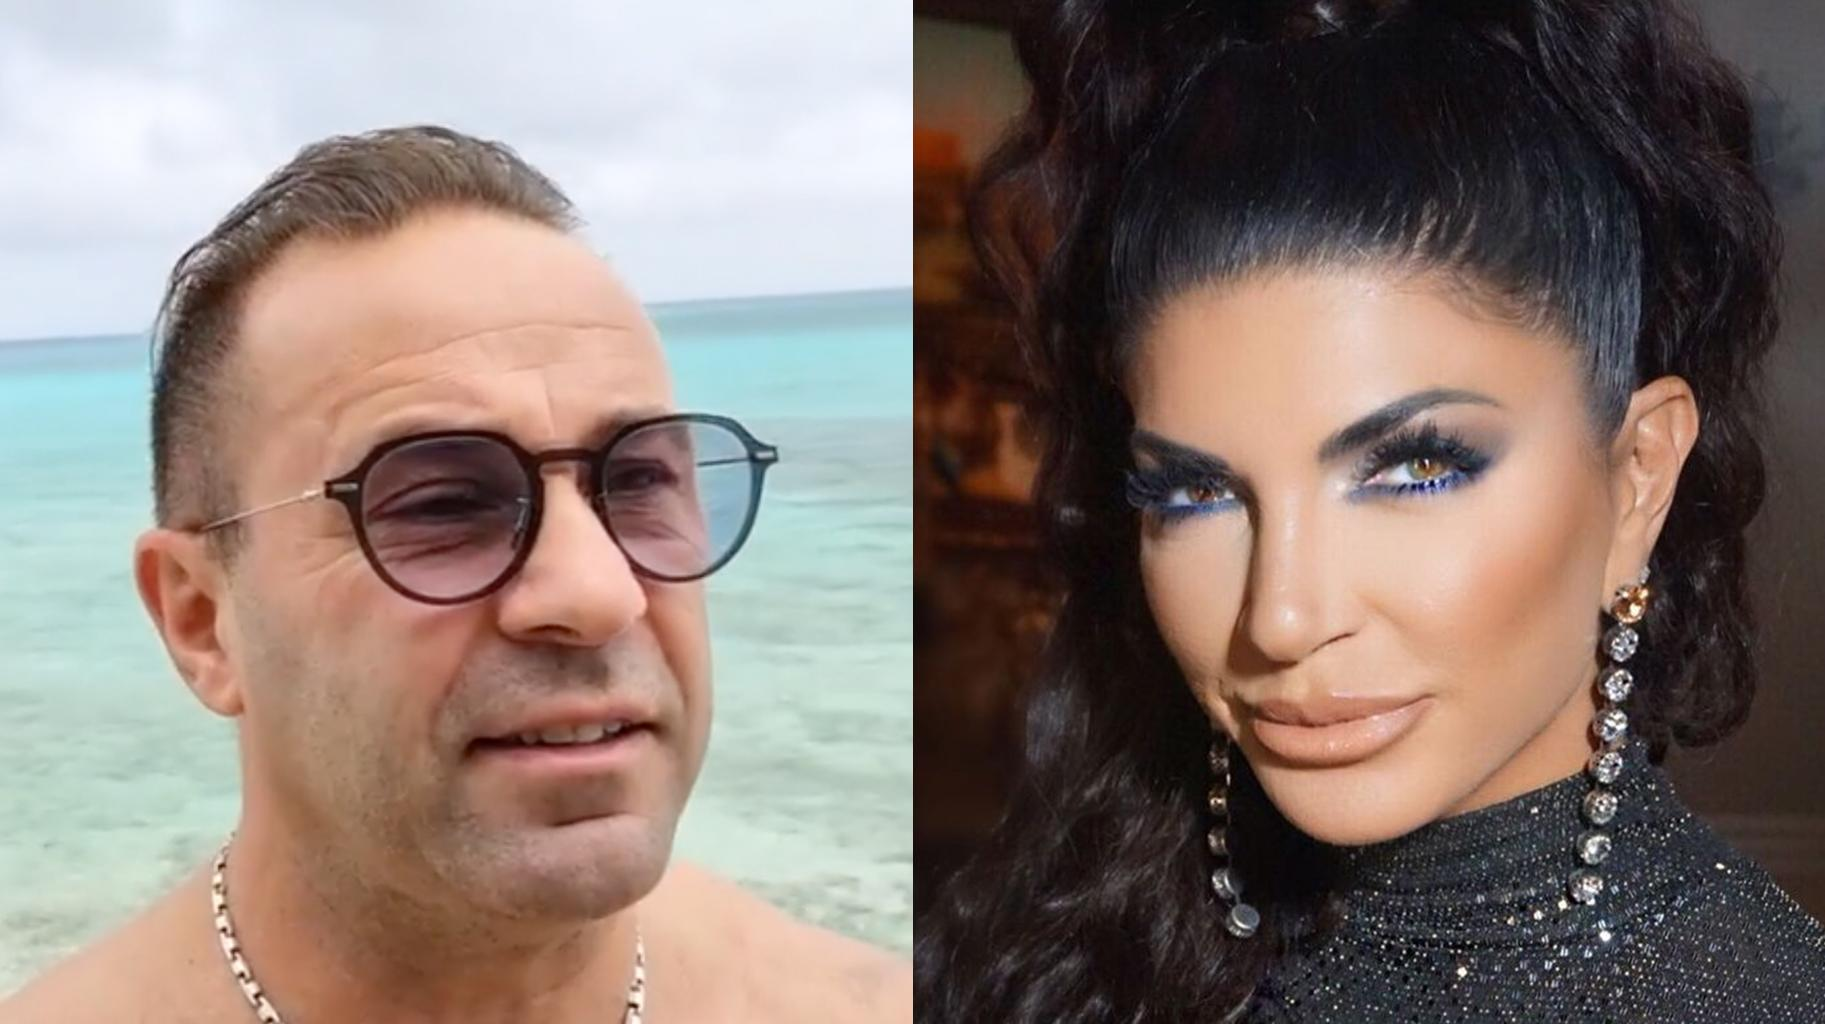 Joe Giudice Has Fun On Luxury Yacht In The Bahamas After Deportation - Can He Return To The States Yet?